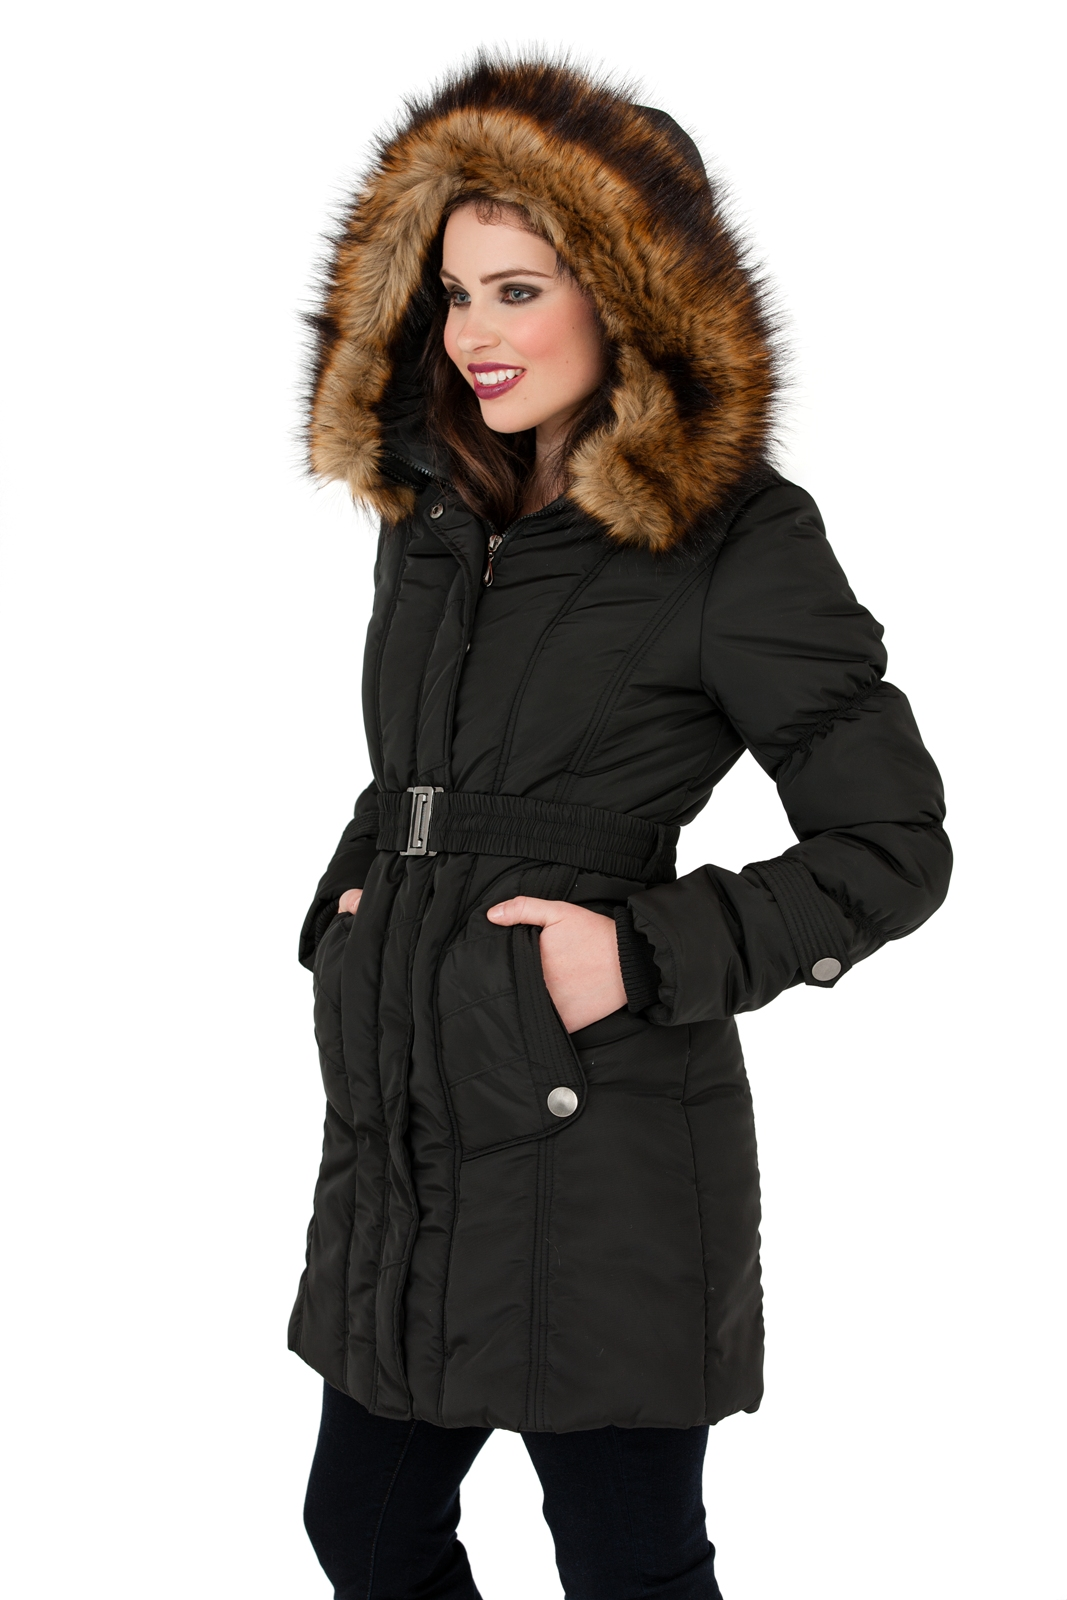 Free shipping and returns on Women's Faux Fur Coats, Jackets & Blazers at grounwhijwgg.cf